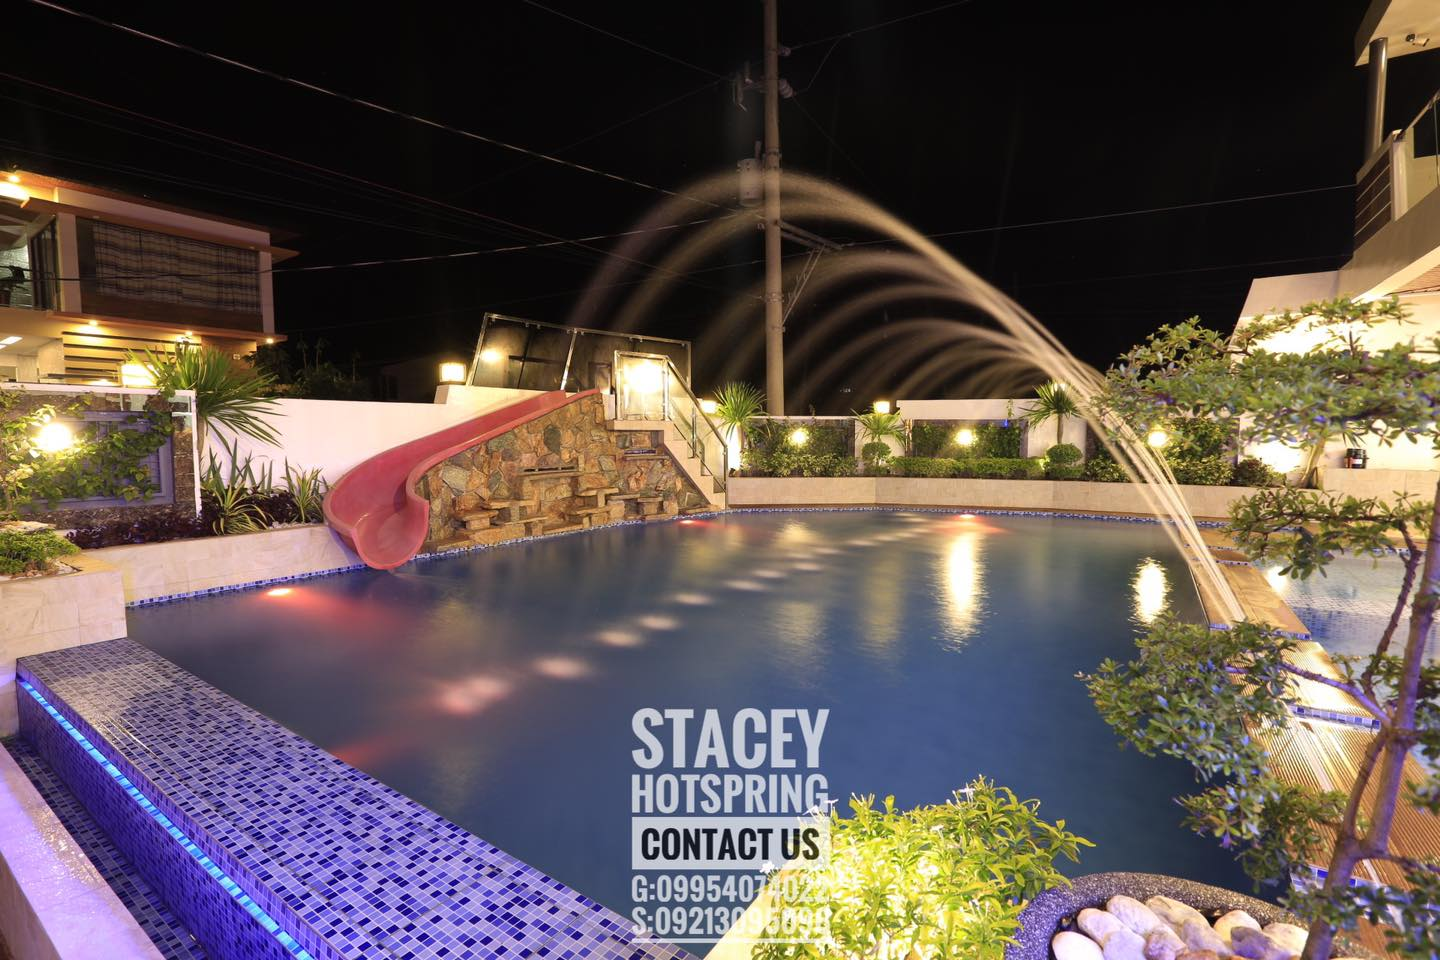 Stacey 29